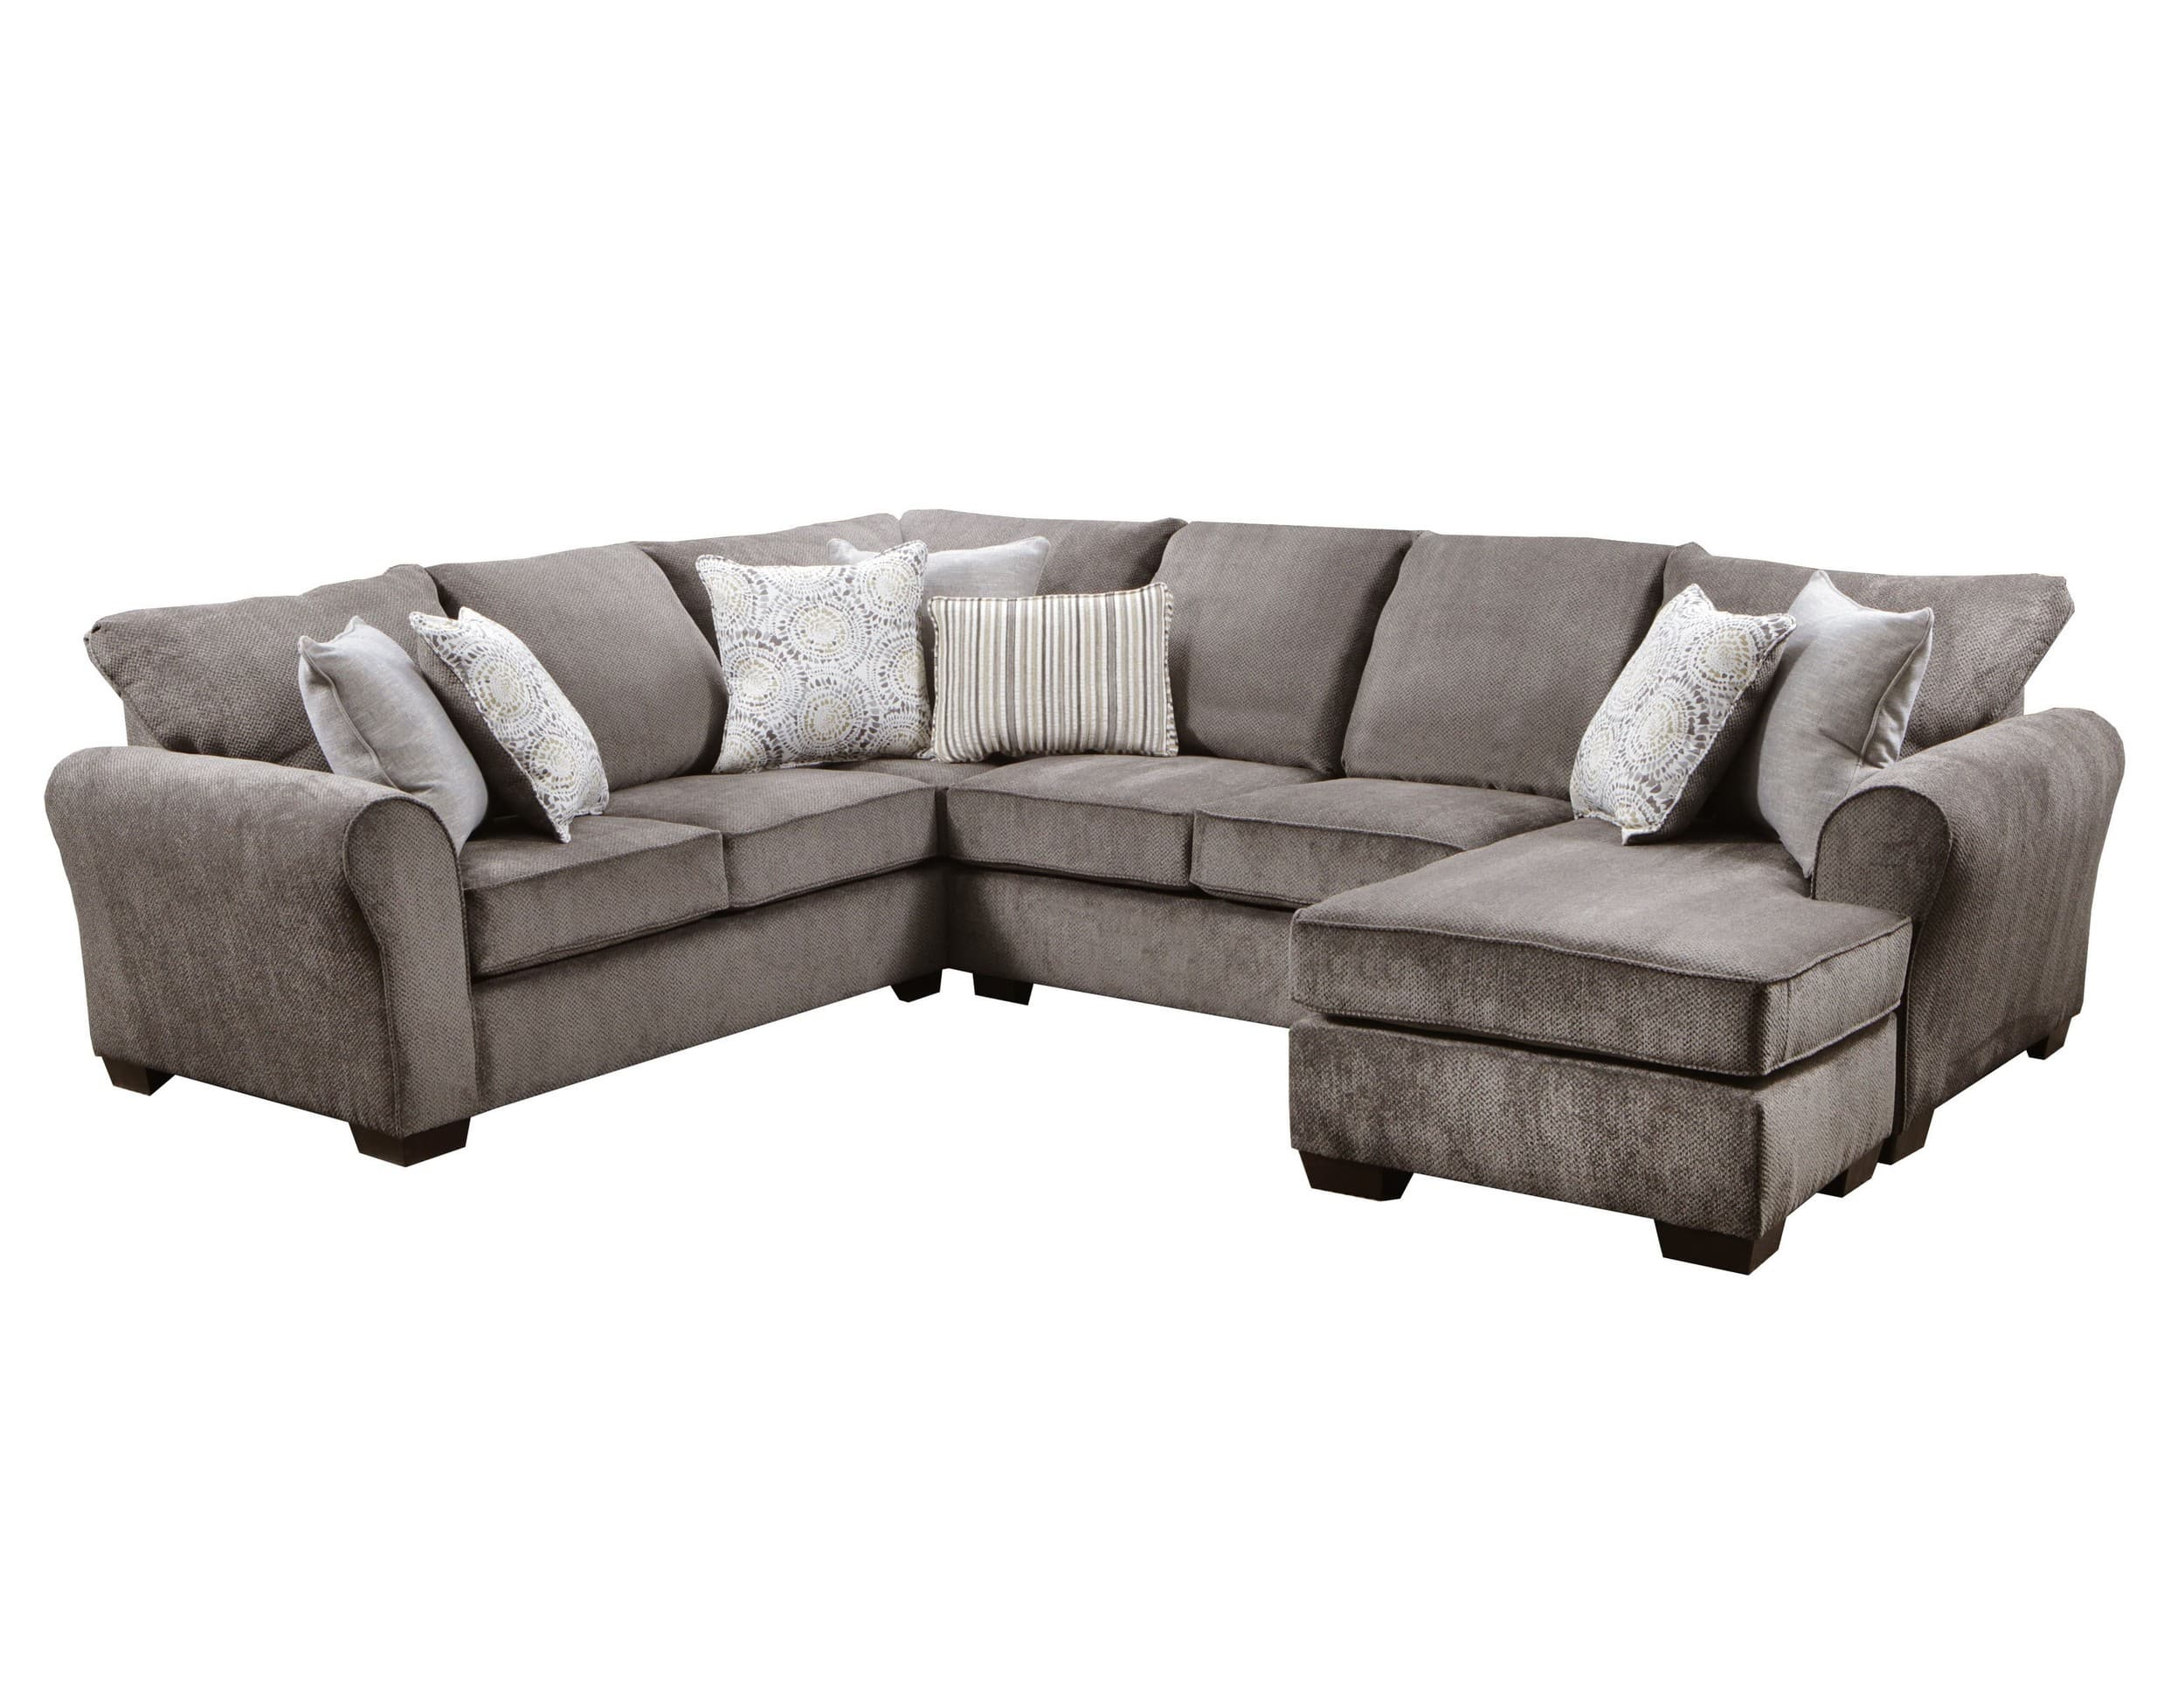 Simmons Upholstery Harlow Ash 2 Piece Sectional Sofa Reviews